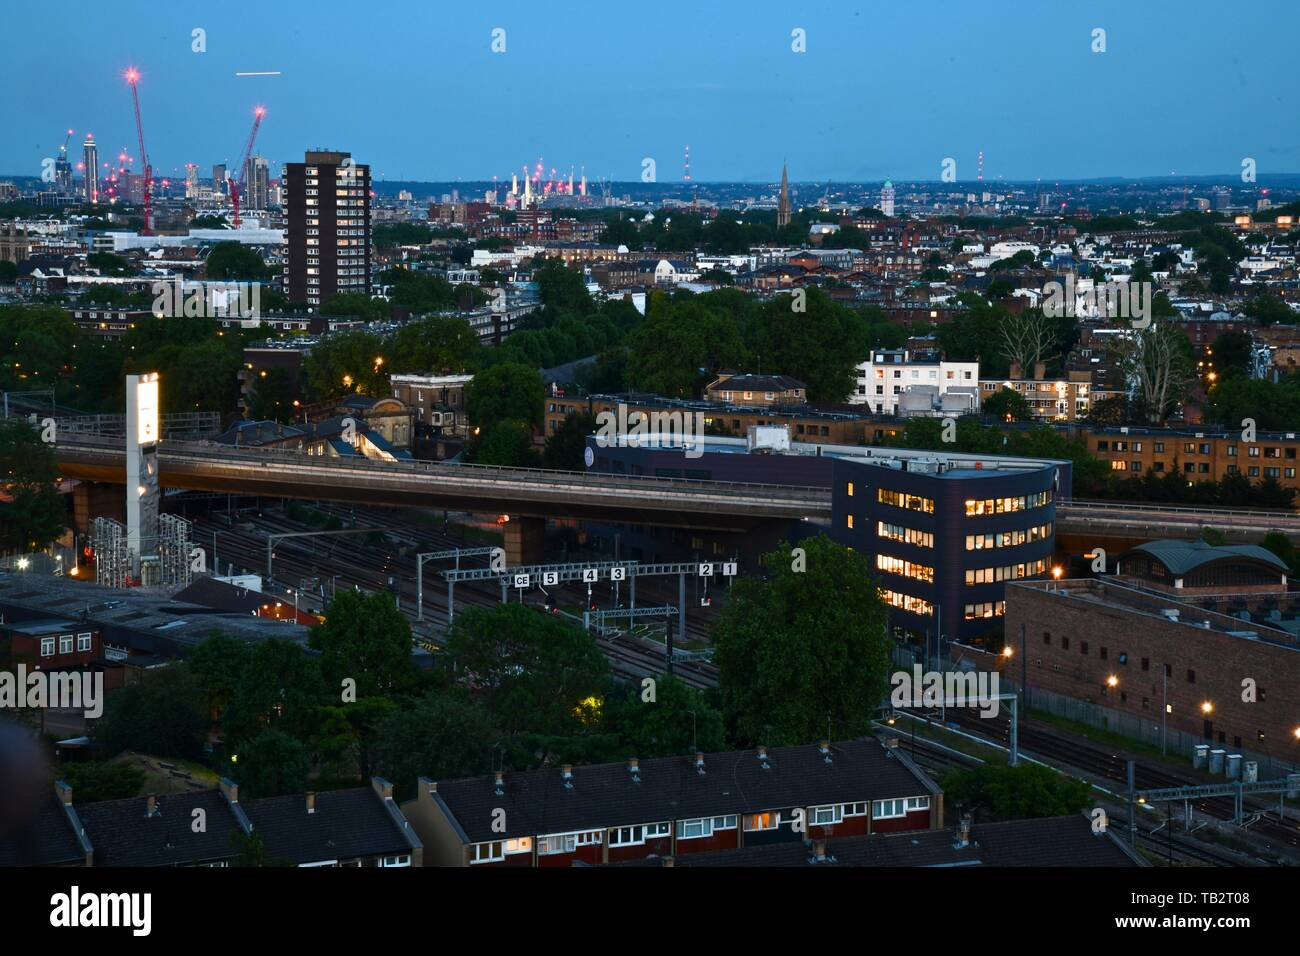 Views of west London at night from Trellick Tower - Stock Image